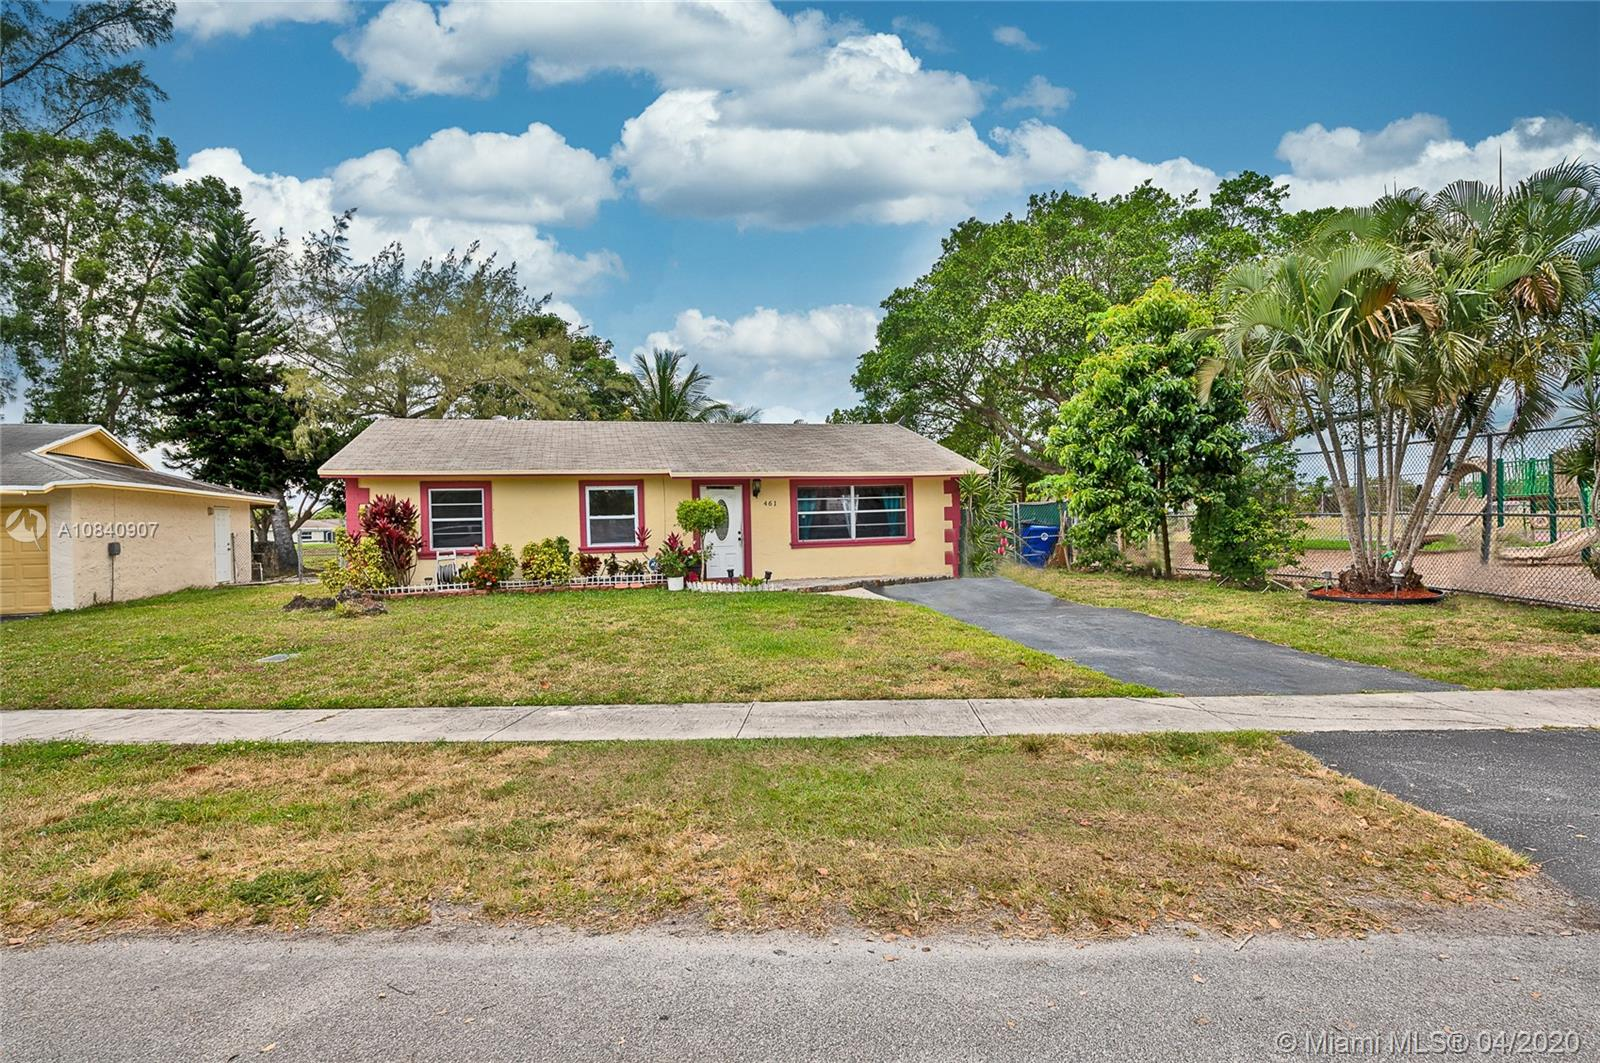 Beautiful 3 BED/2 BATH single family home in desired North Lauderdale Village community.  Great access to main streets and close to major highways, shopping stores, and Sawgrass mall.  Community is conveniently located next to a park with plenty of amenities and basketball courts.  Enjoy your kitchen overlooking the canal.  Great for entertainment and enjoy fishing right from your backyard. This home features kitchen with hardwood cabinets, granite counter tops, and stainless steel appliances.  This home is an all age welcome community, no restrictions, pets welcome, no HOA approval. FHA approved! bring your best offers, it won't last!